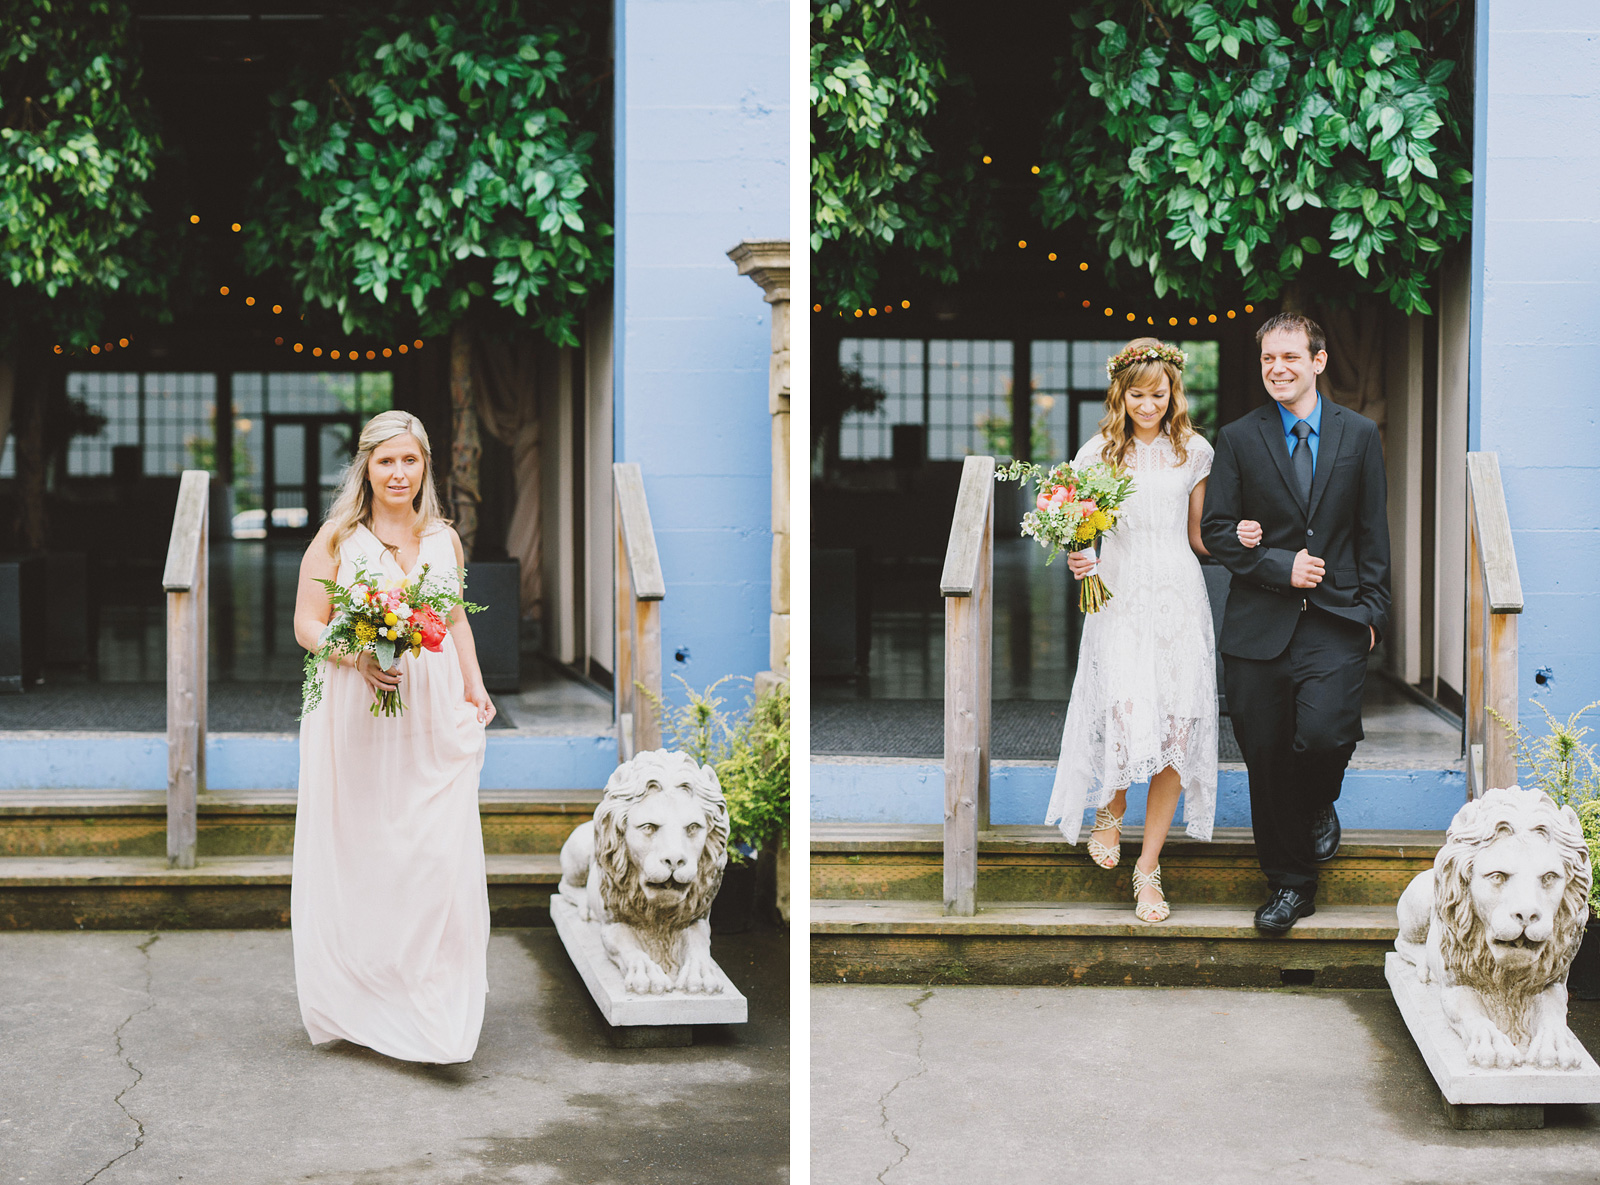 Maid of honor and Bride's grand entrace | Castaway Portland Wedding